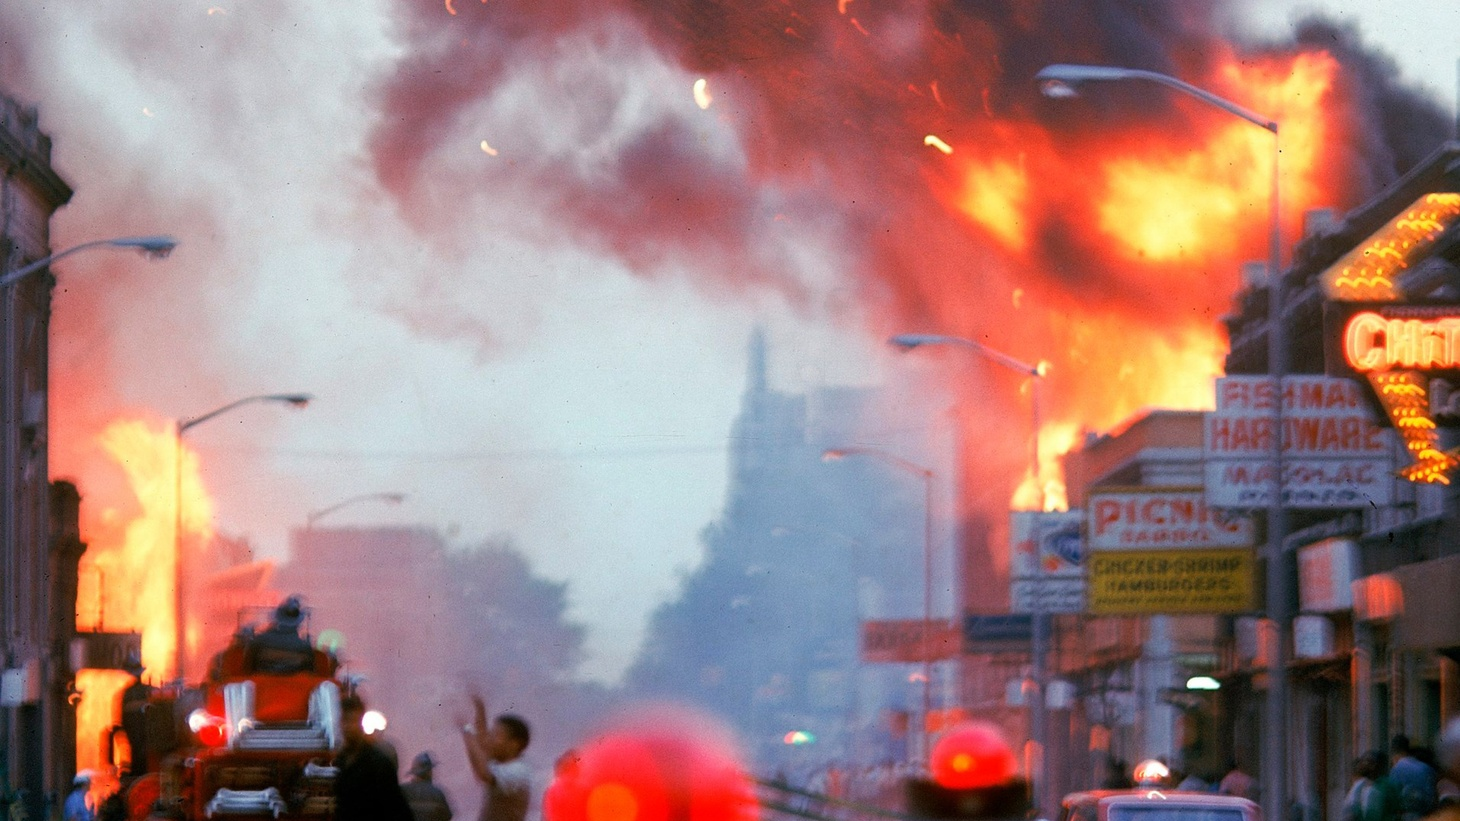 Detroit is Kathryn Bigelow's incendiary evocation of the riots that convulsed the Motor City 50 years ago this week.